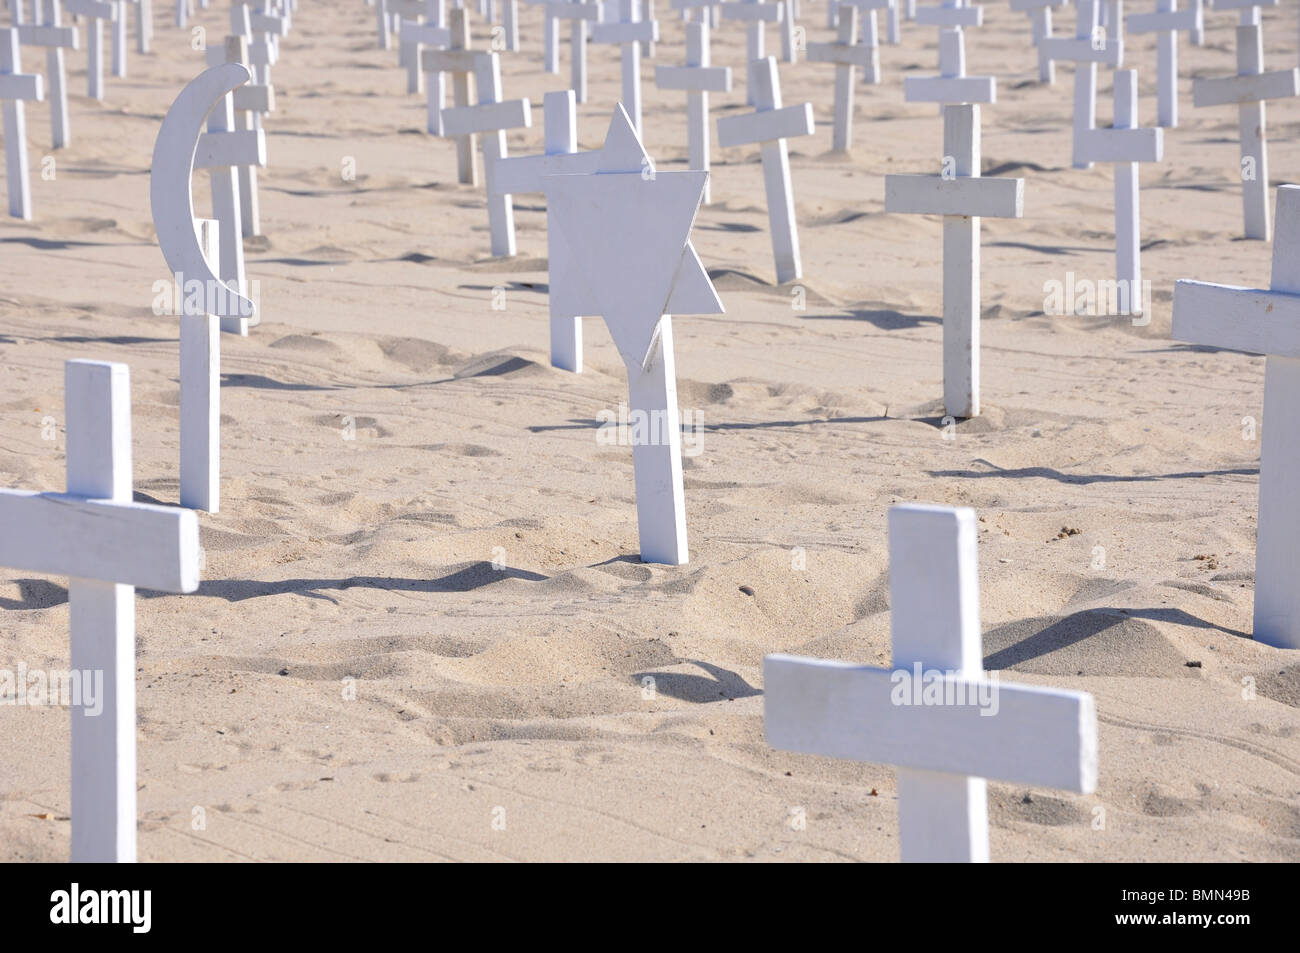 Arlington West - temporary memorial for US soldiers that died in Iraq. It is created on Santa Monica Beach, California - Stock Image